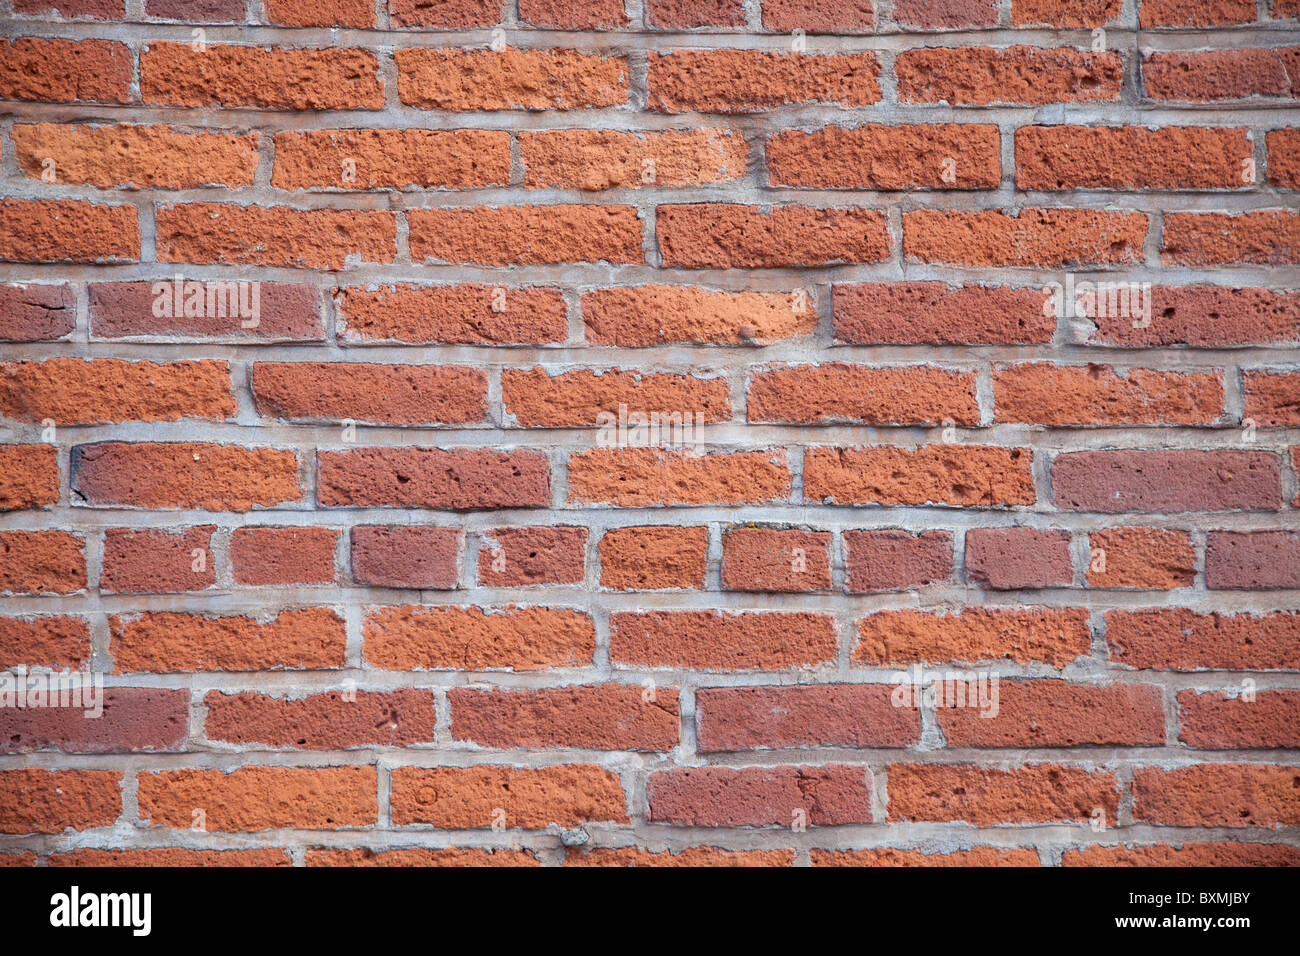 Brick Wall - tack sharp image for use as background - Stock Image